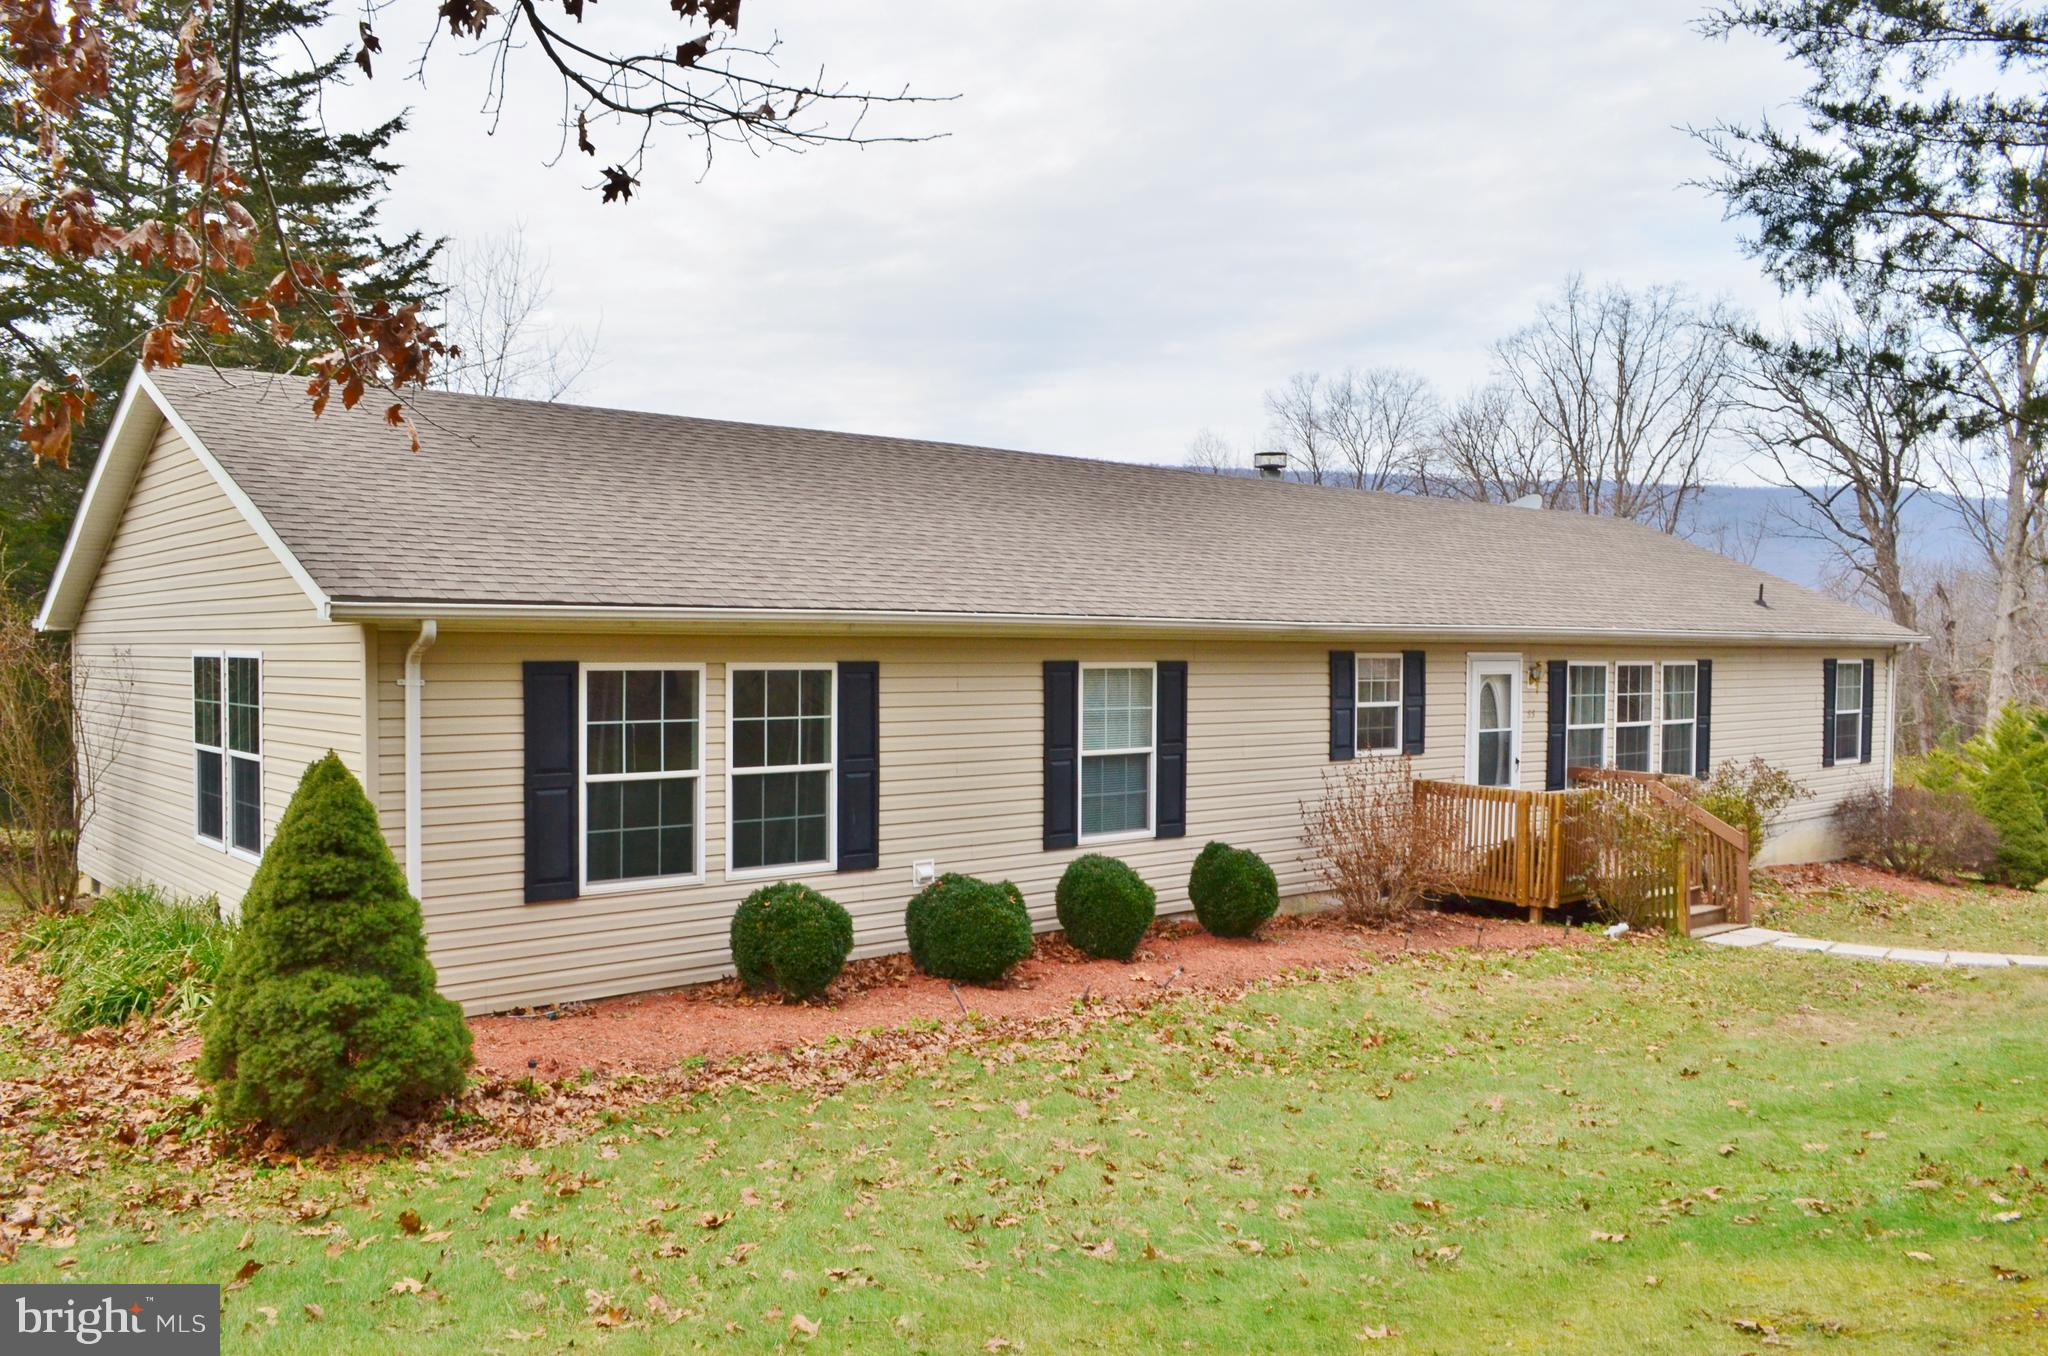 55 BIG OAK LANE, MAURERTOWN, VA 22644